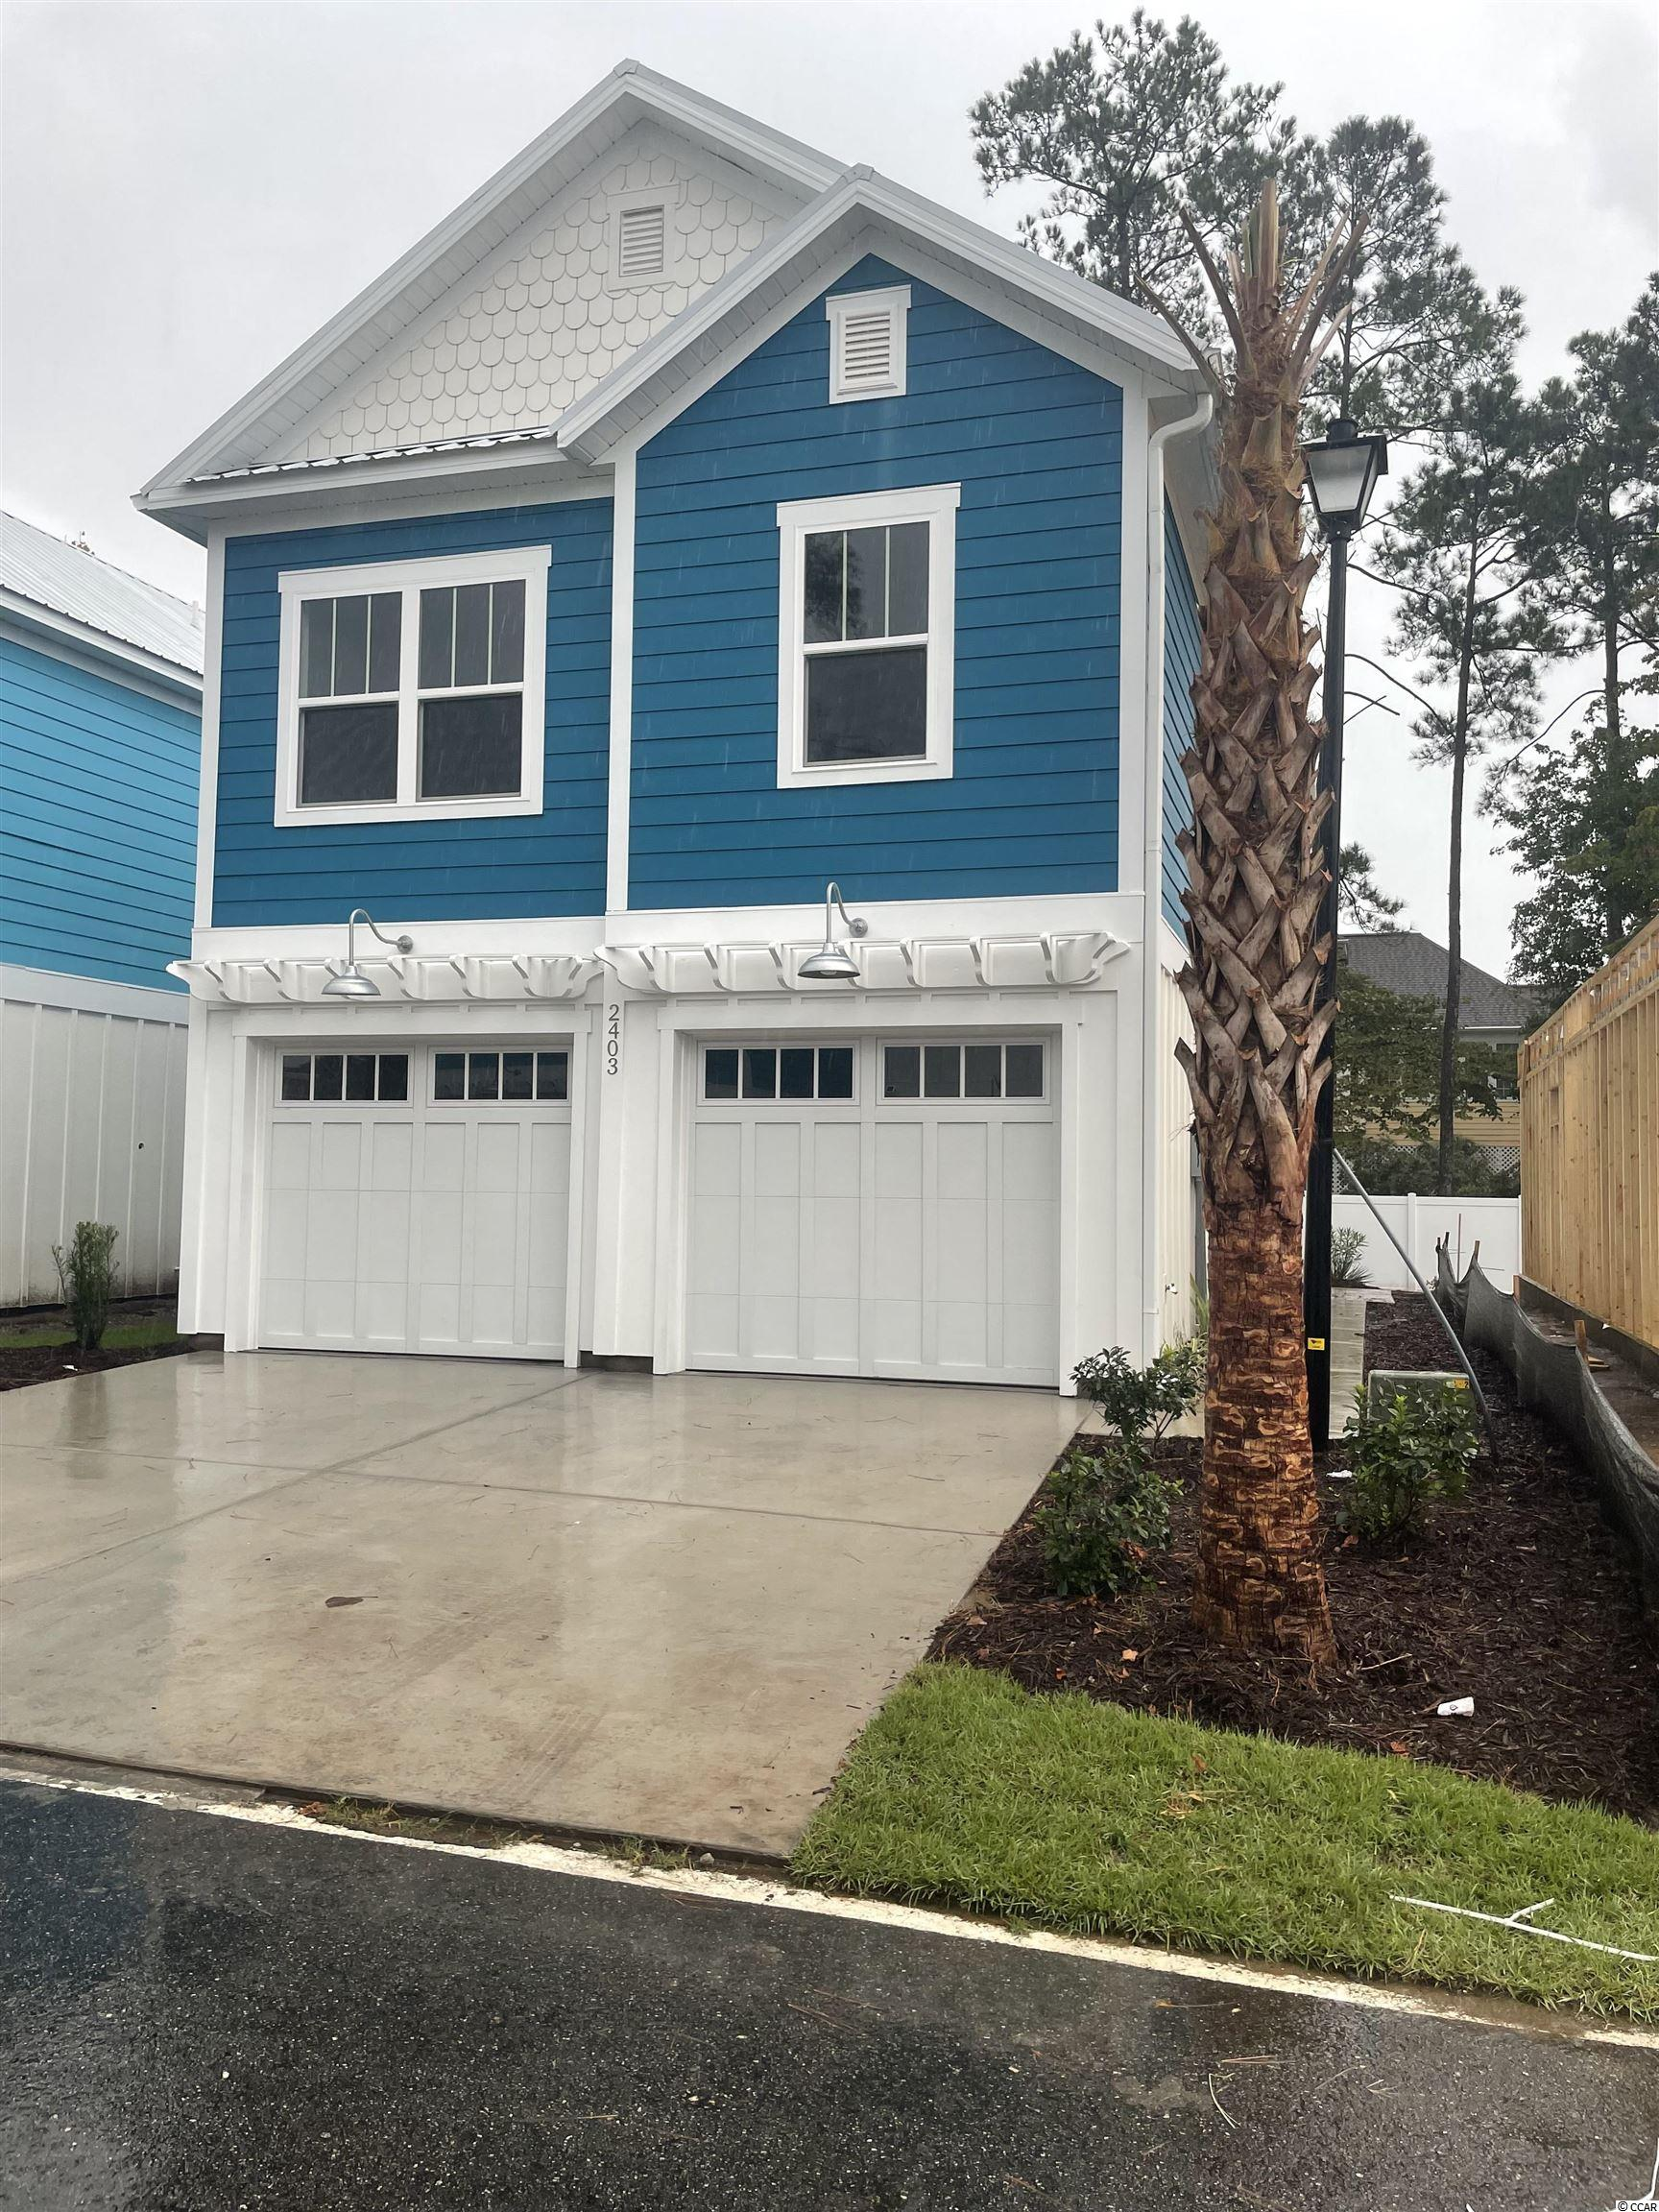 East of 17 Business and neighborhood views of the Ocean! This particular lot will be offering the Pelican Sea floor plan. This beachcottage style plan offers a 1st floor master with a master tile shower and walk in closet. The 1st floor will also have den/study with a halfbath. Upgrades that are included are; LVT flooring throughout, granite, stainless steel appliances, and a custom trim package ! Whenyou walk through our model you will see the quality build from the custom doors to the custom cabinets ! This home also comes standardwith an outdoor shower for a quick rinse from the beach. Location Location Location, These homes are situated minutes from MarketCommon, Myrtle Beach Airport, Shopping and entertainment. And of course a few blocks from the ocean!